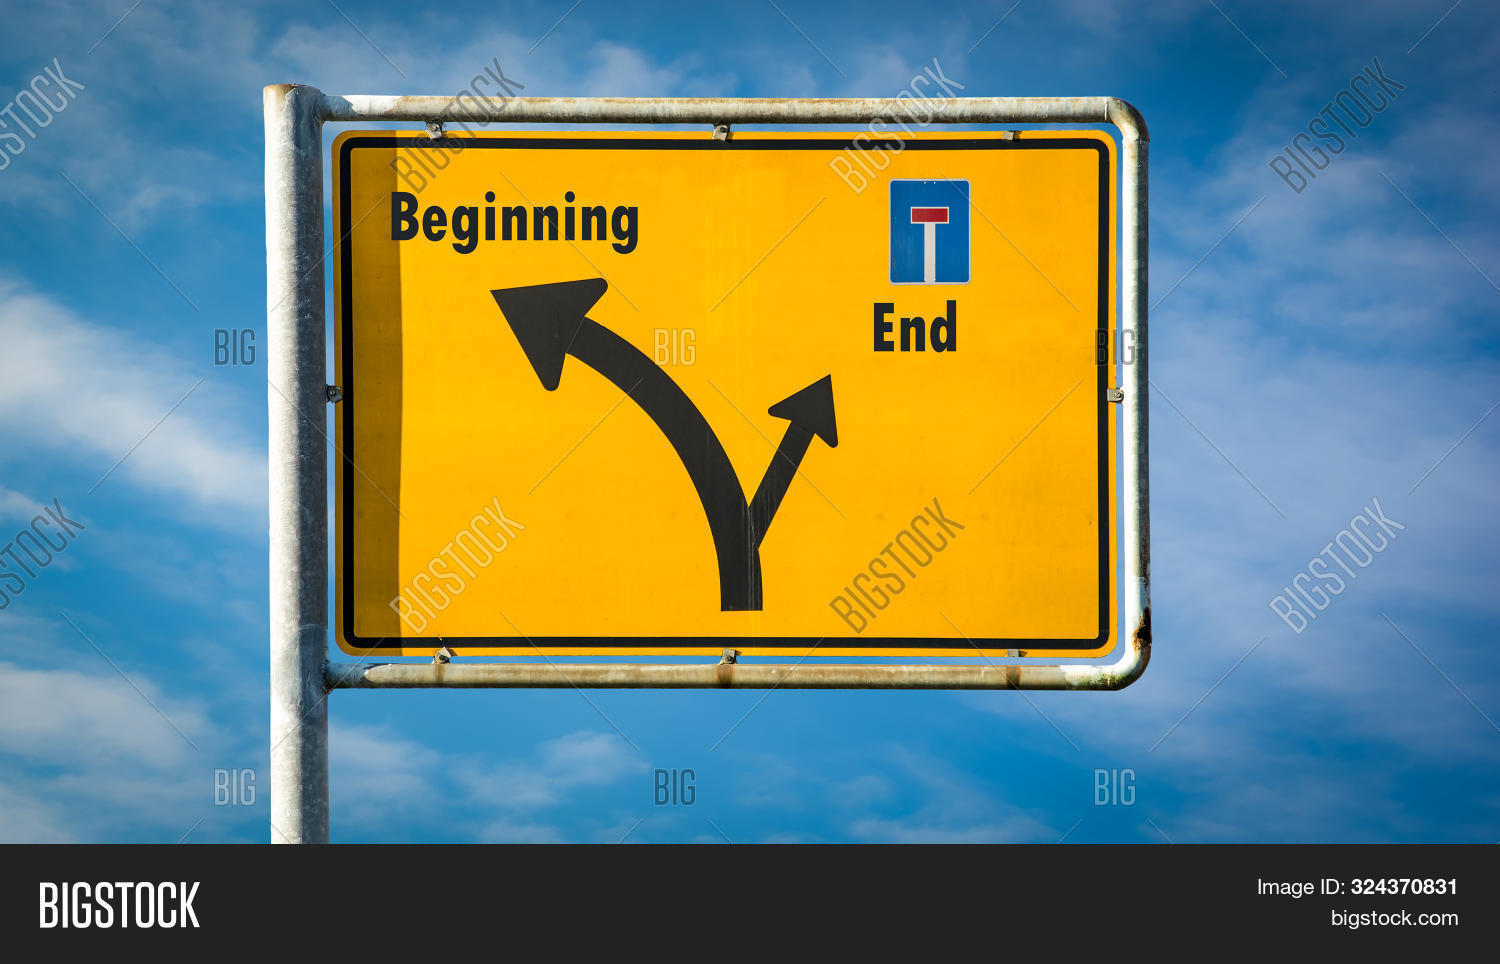 Life,beginning,catch,change,courage,direction,end,hope,joy,motto,move,new,old,out,past,perspective,purpose,road,shield,sign,step,versus,vs,way